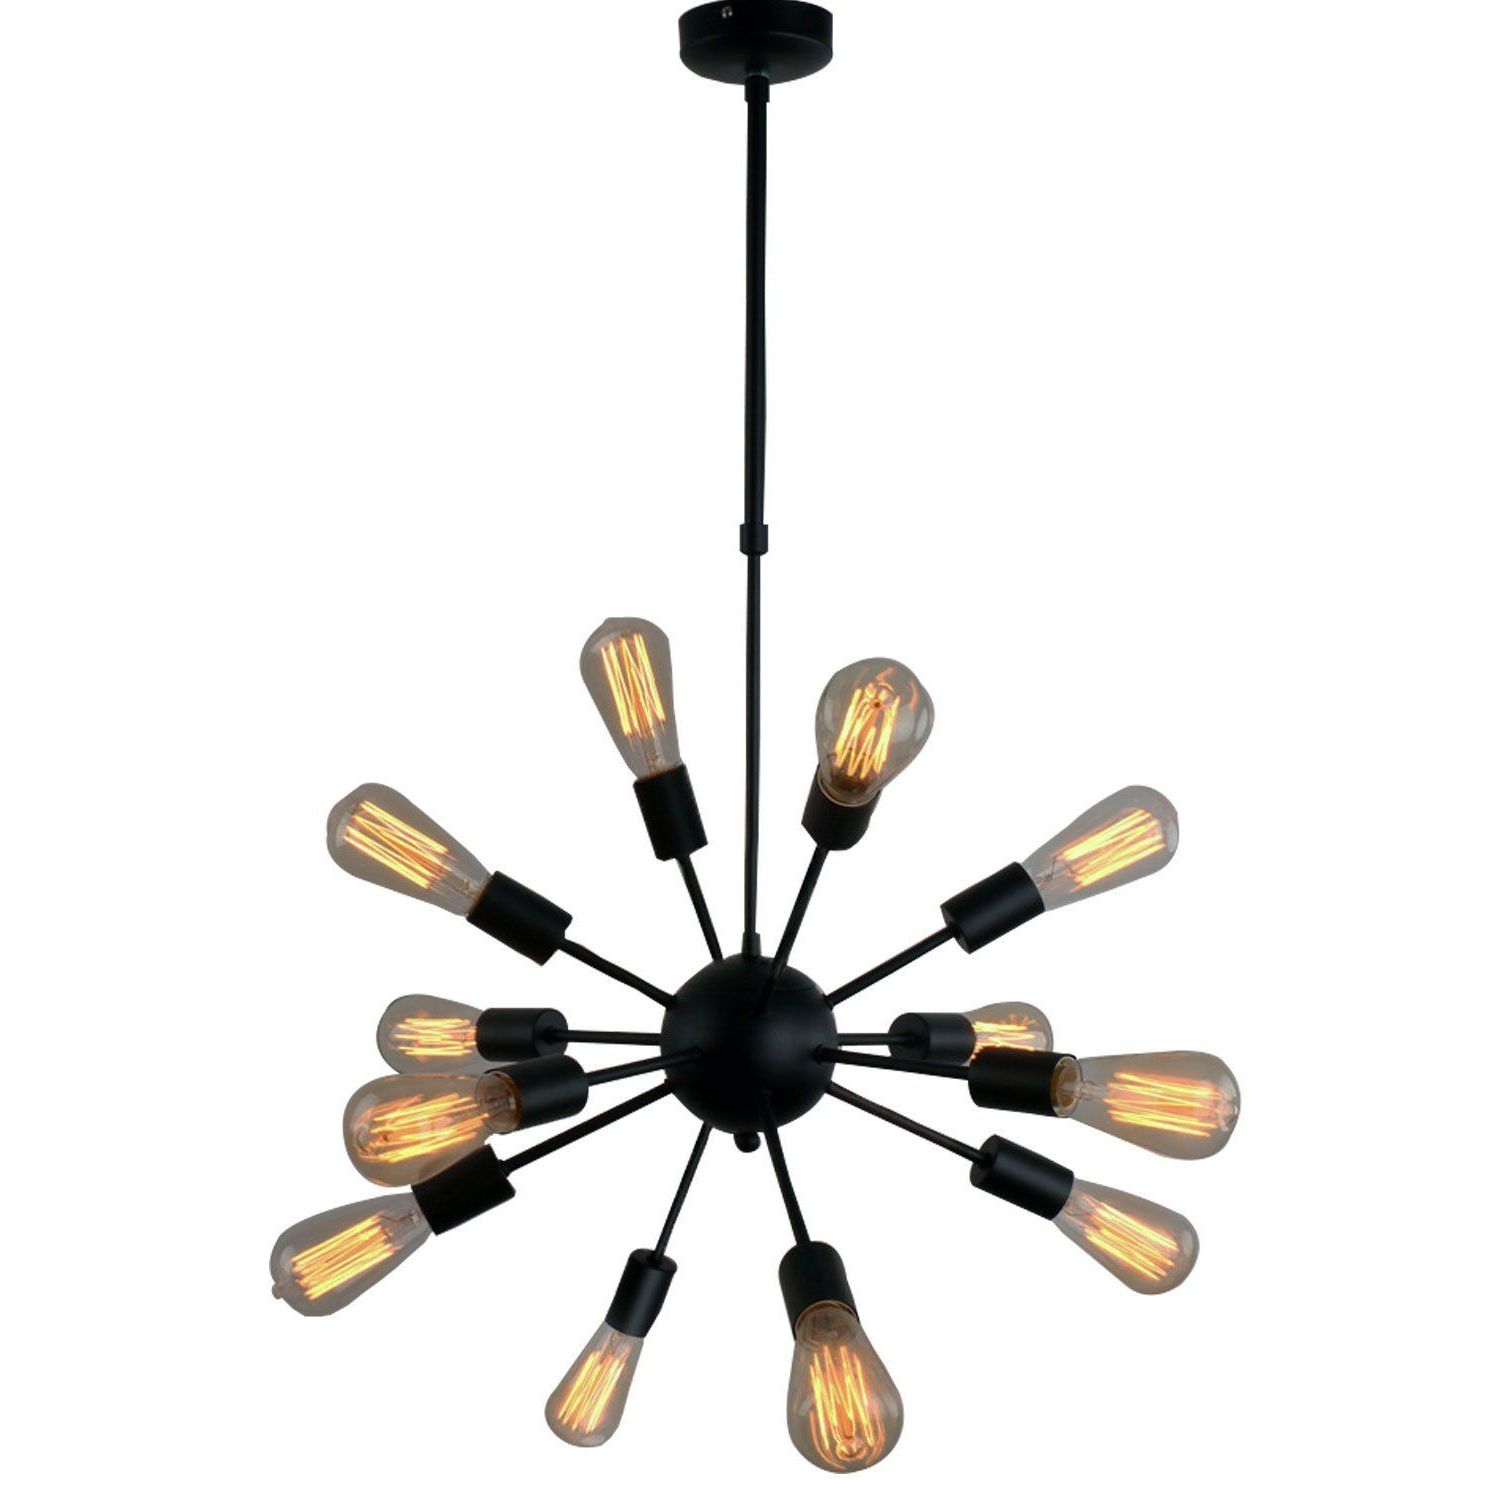 Best And Newest Lamp: Vintage Metal Large Dimmable Sputnik Chandelier With Intended For Vroman 12 Light Sputnik Chandeliers (View 17 of 20)